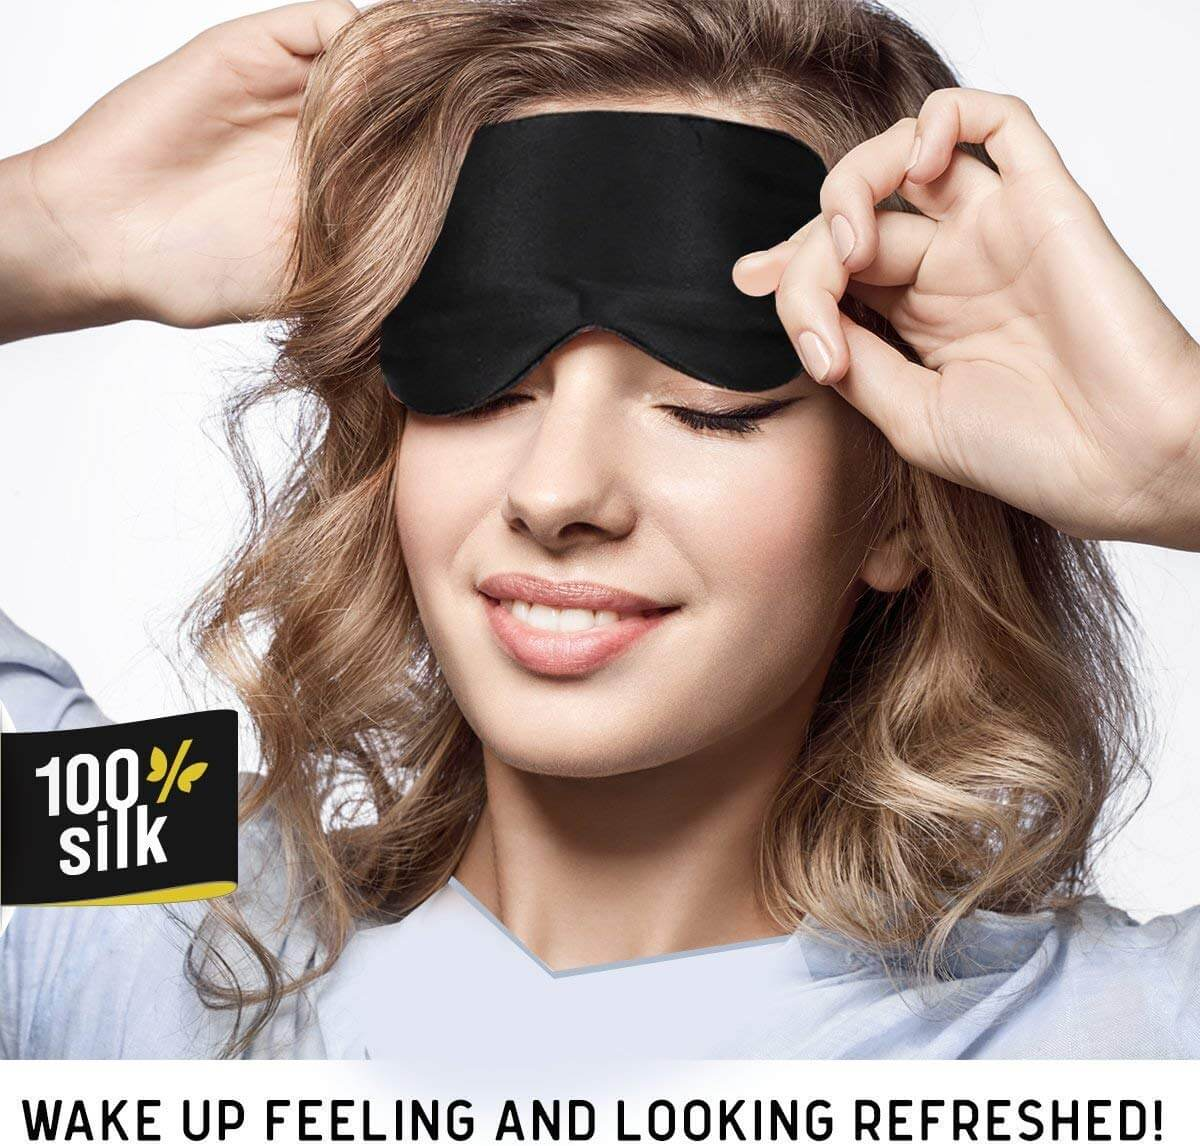 A young girl with brown curly hair is using a black sleep mask